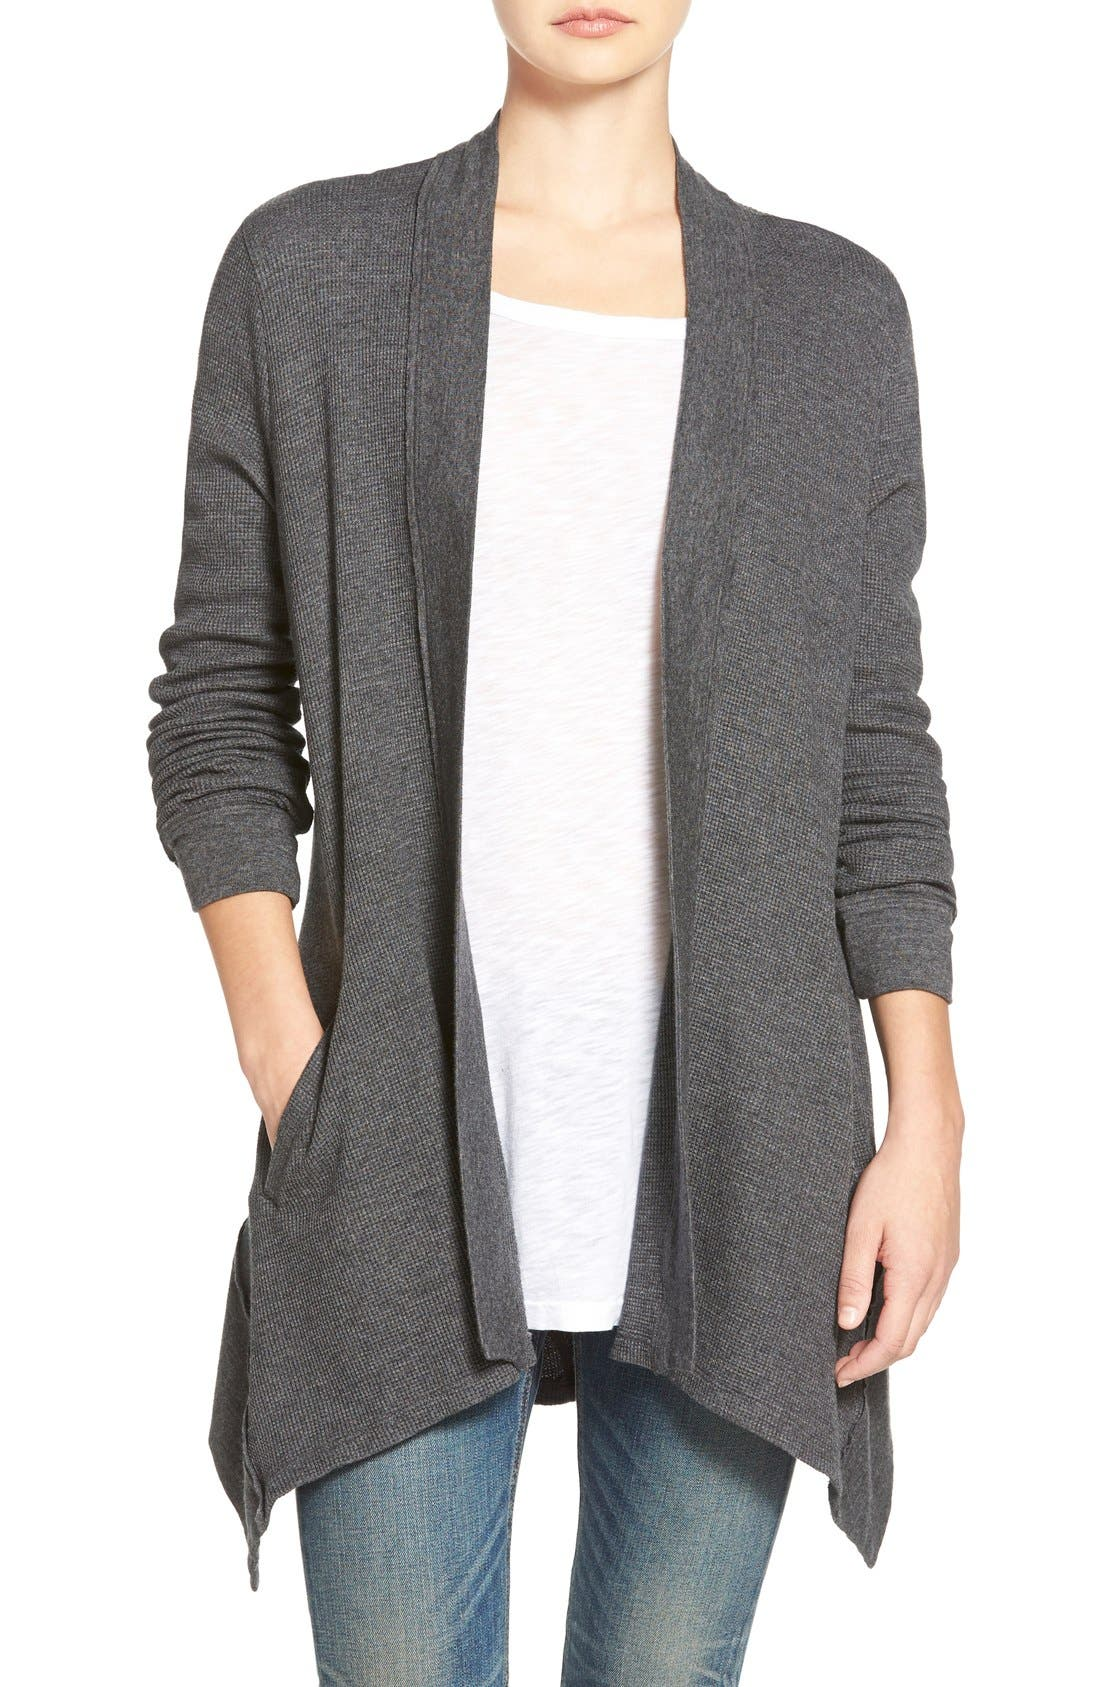 Alternate Image 1 Selected - Splendid Waffle Knit Open Front Cardigan